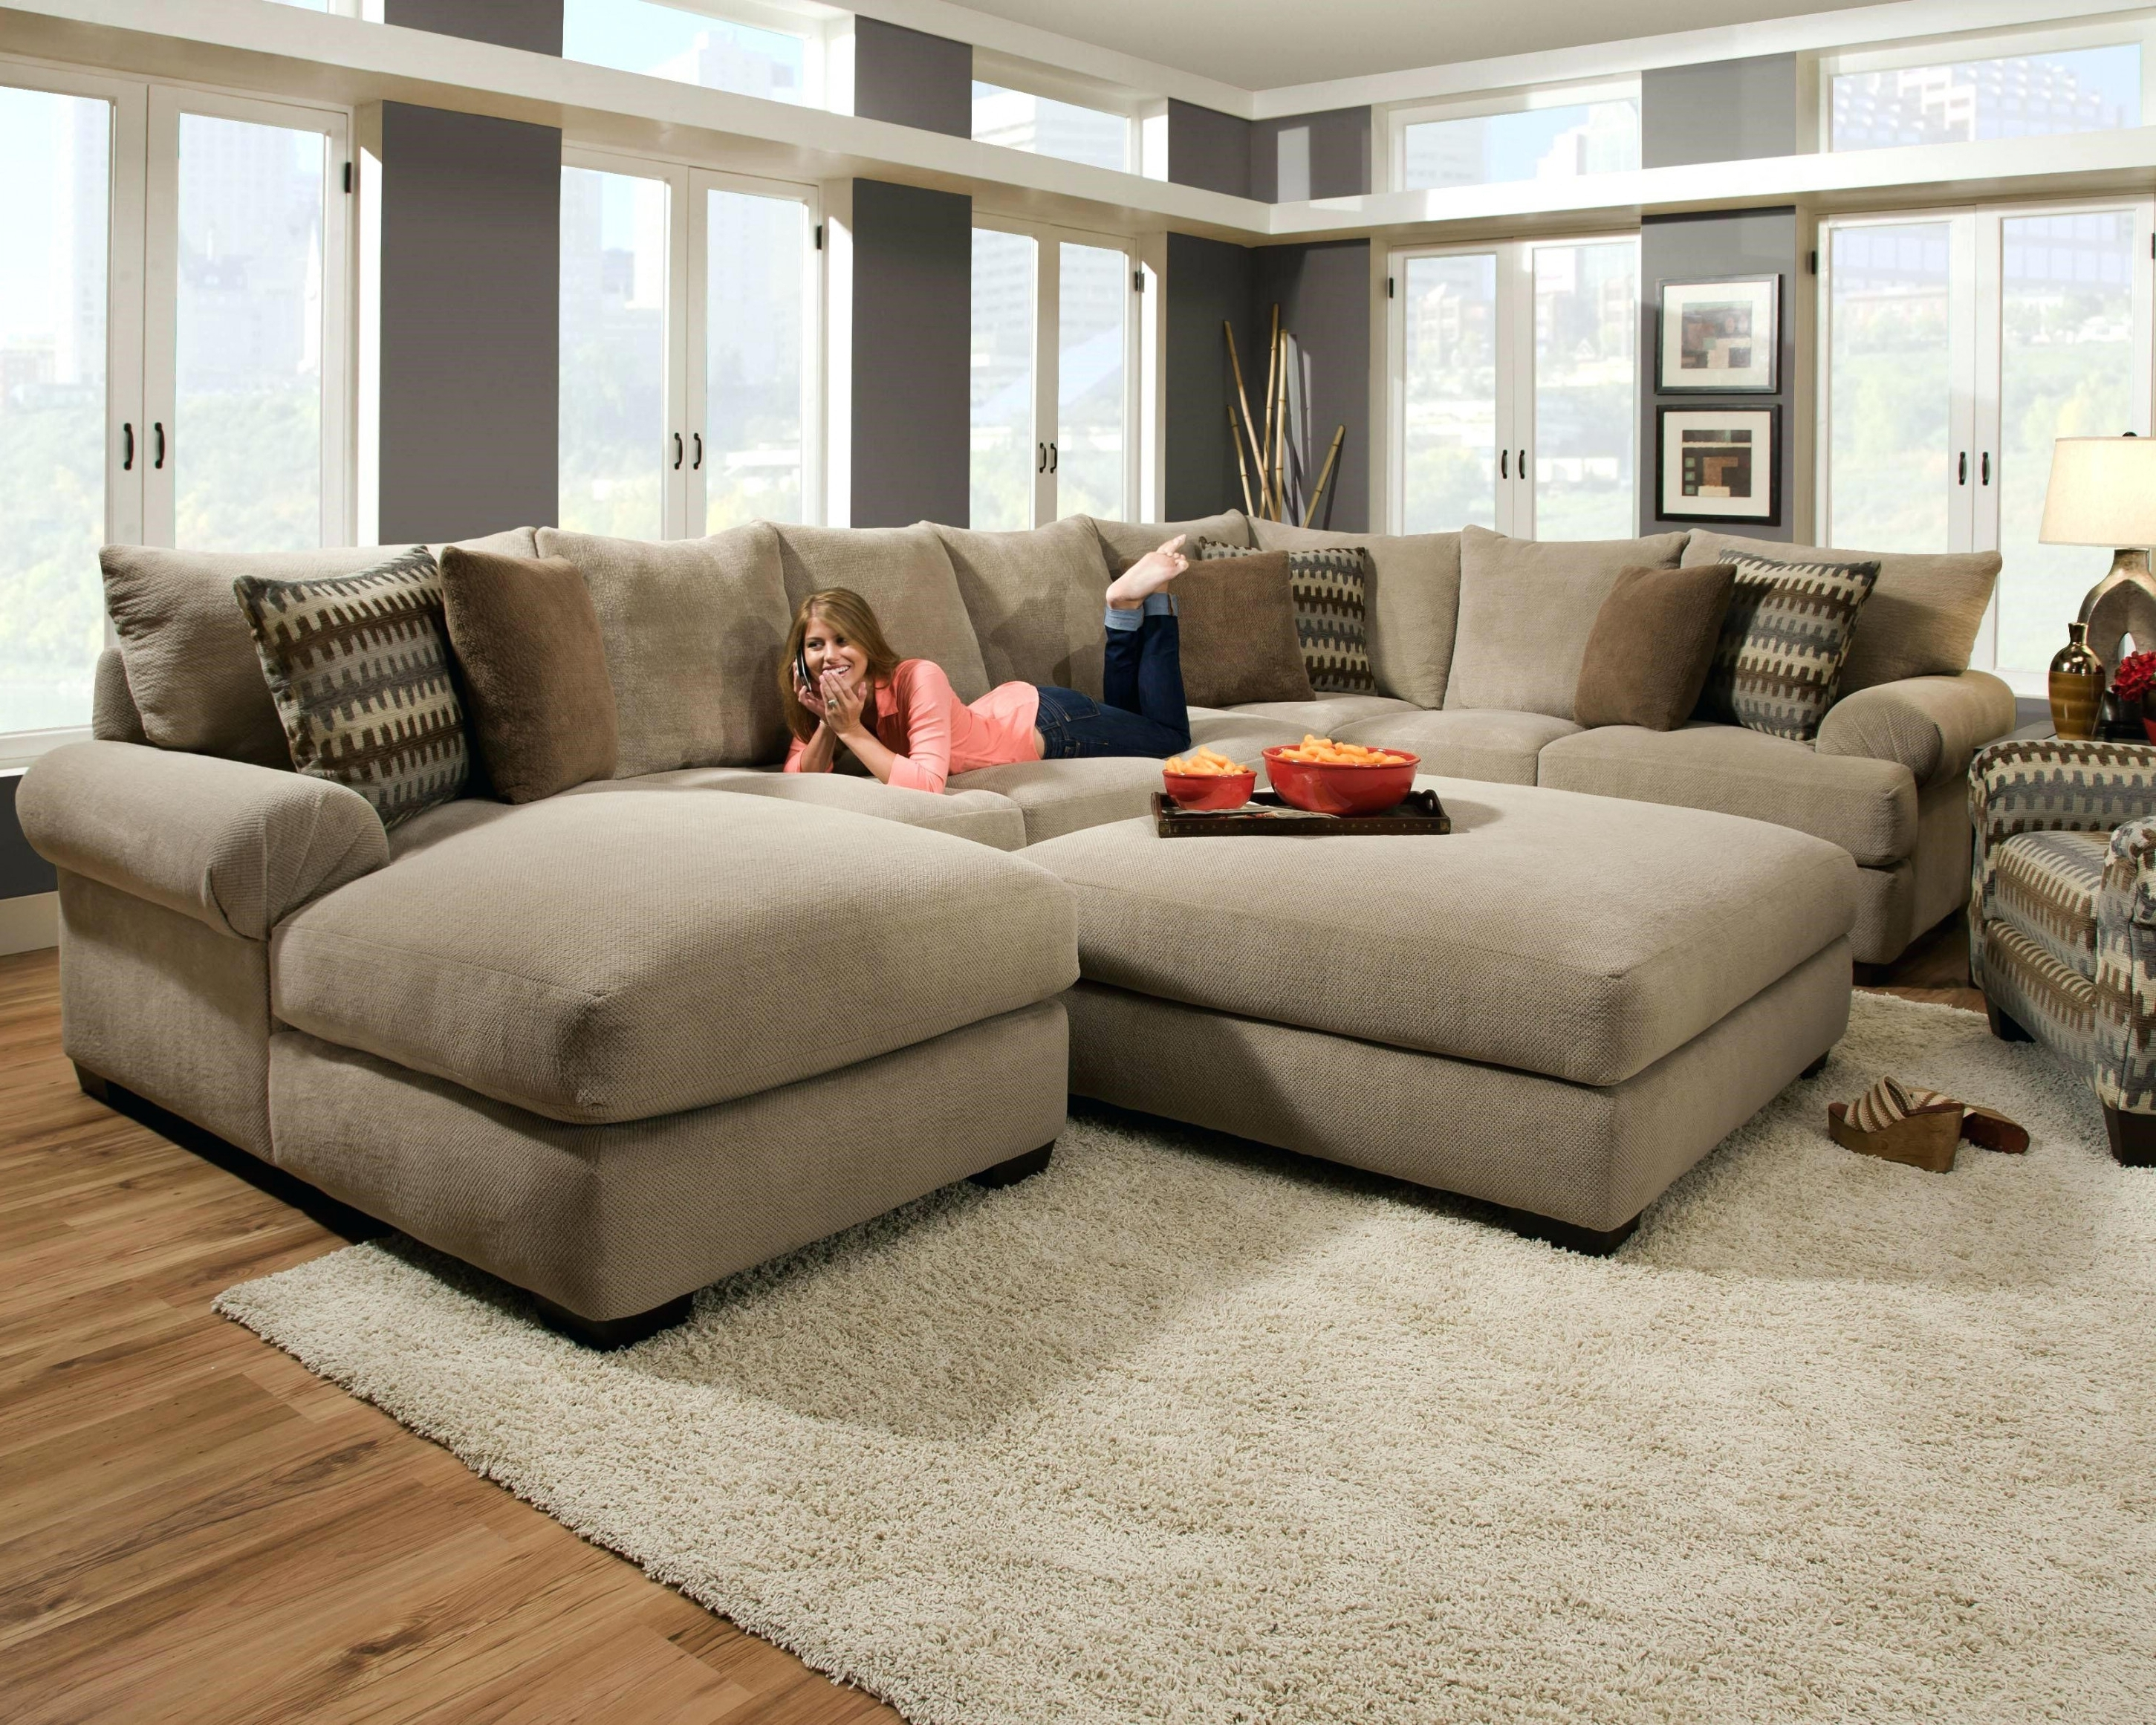 Best And Newest Sectional Sofas At Big Lots Intended For Sectional Sofas Big Lots (View 10 of 15)